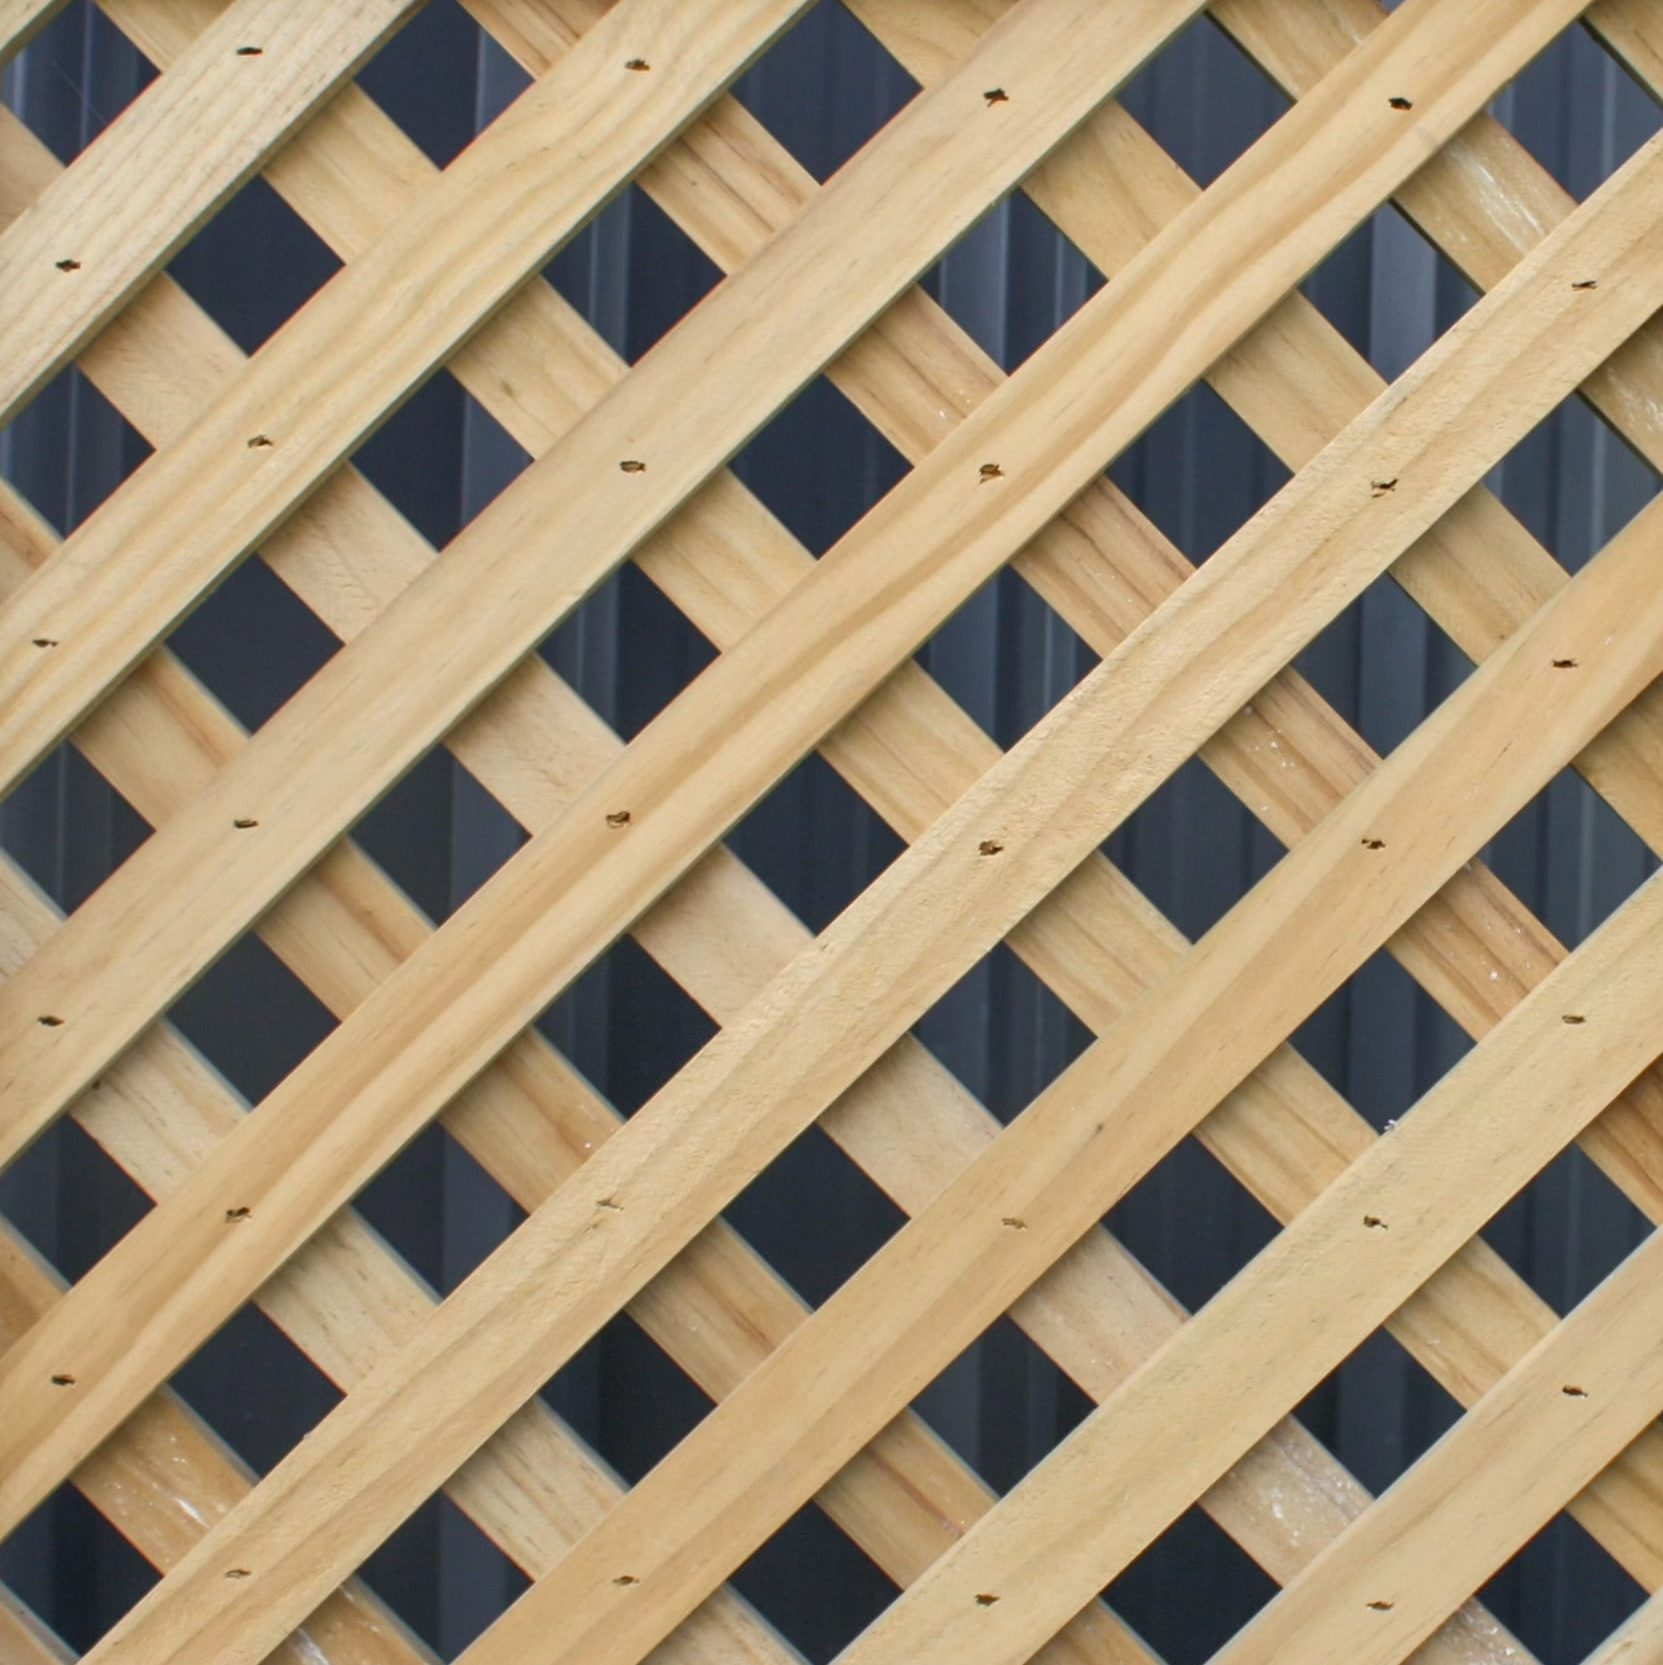 A picture of a 35mm diagonal fence design